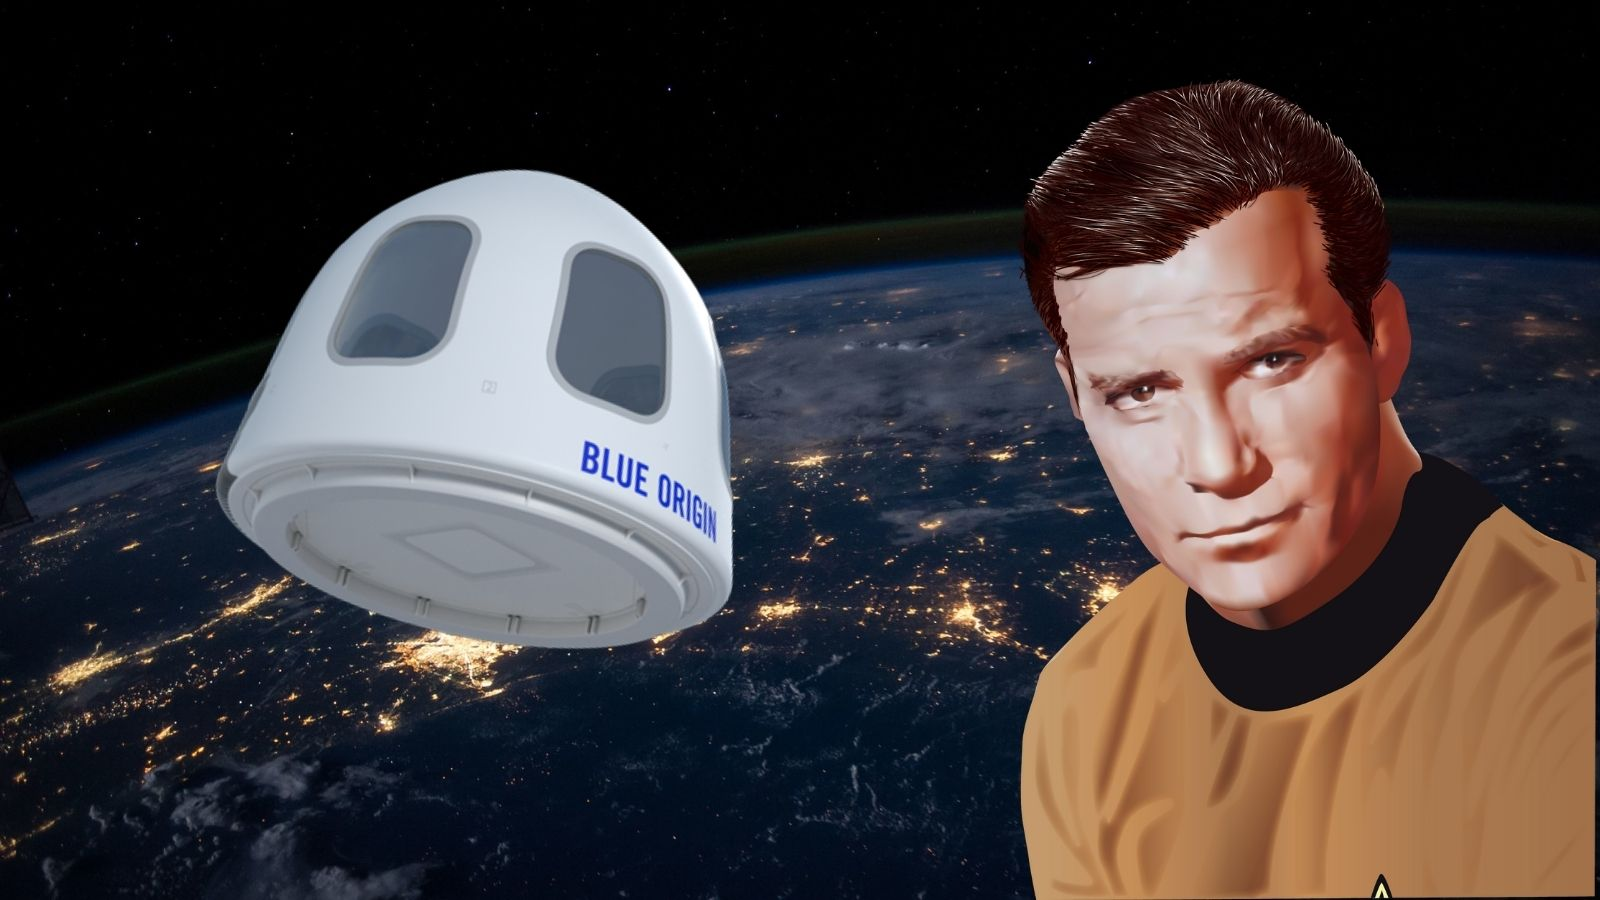 william shatner at 90 becomes the oldest person to go to